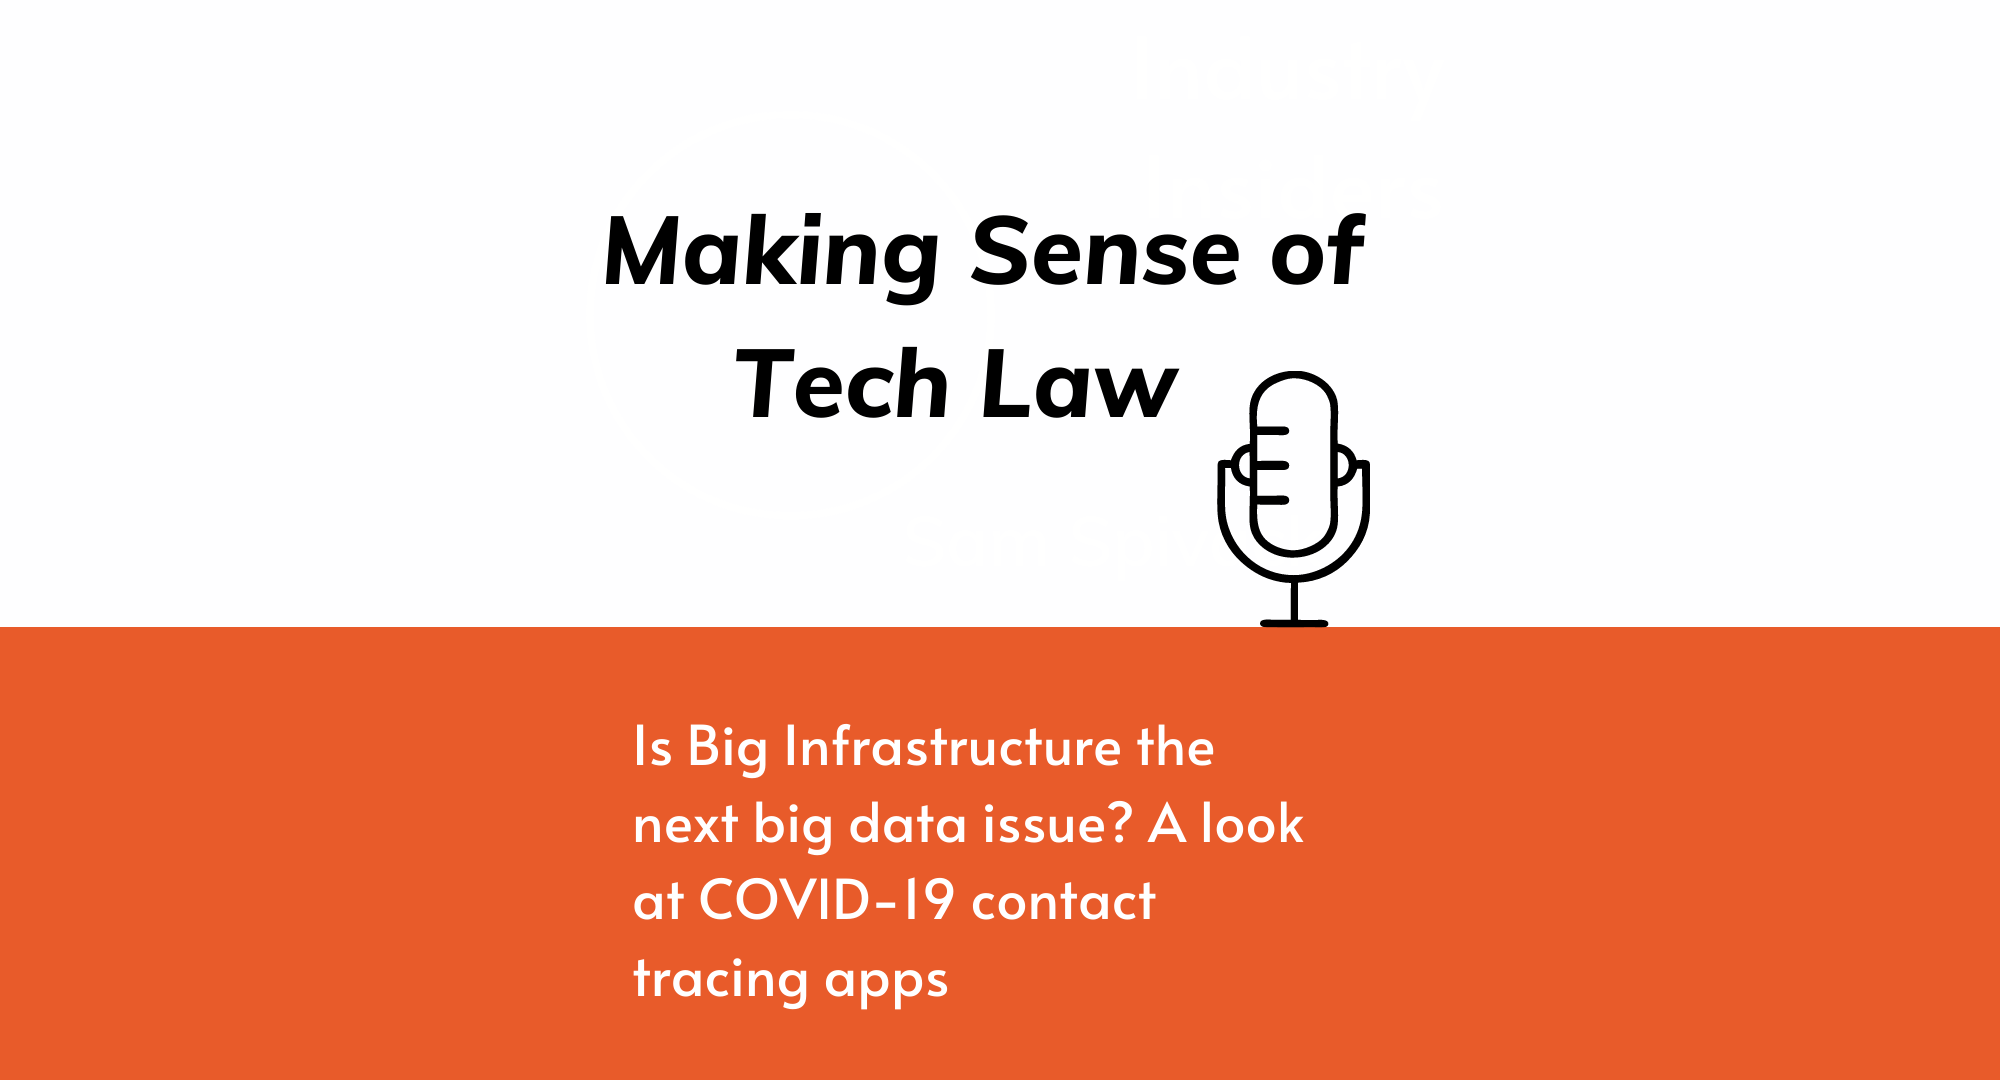 Making Sense of Tech Law Podcast: Episode 1 Out Now!